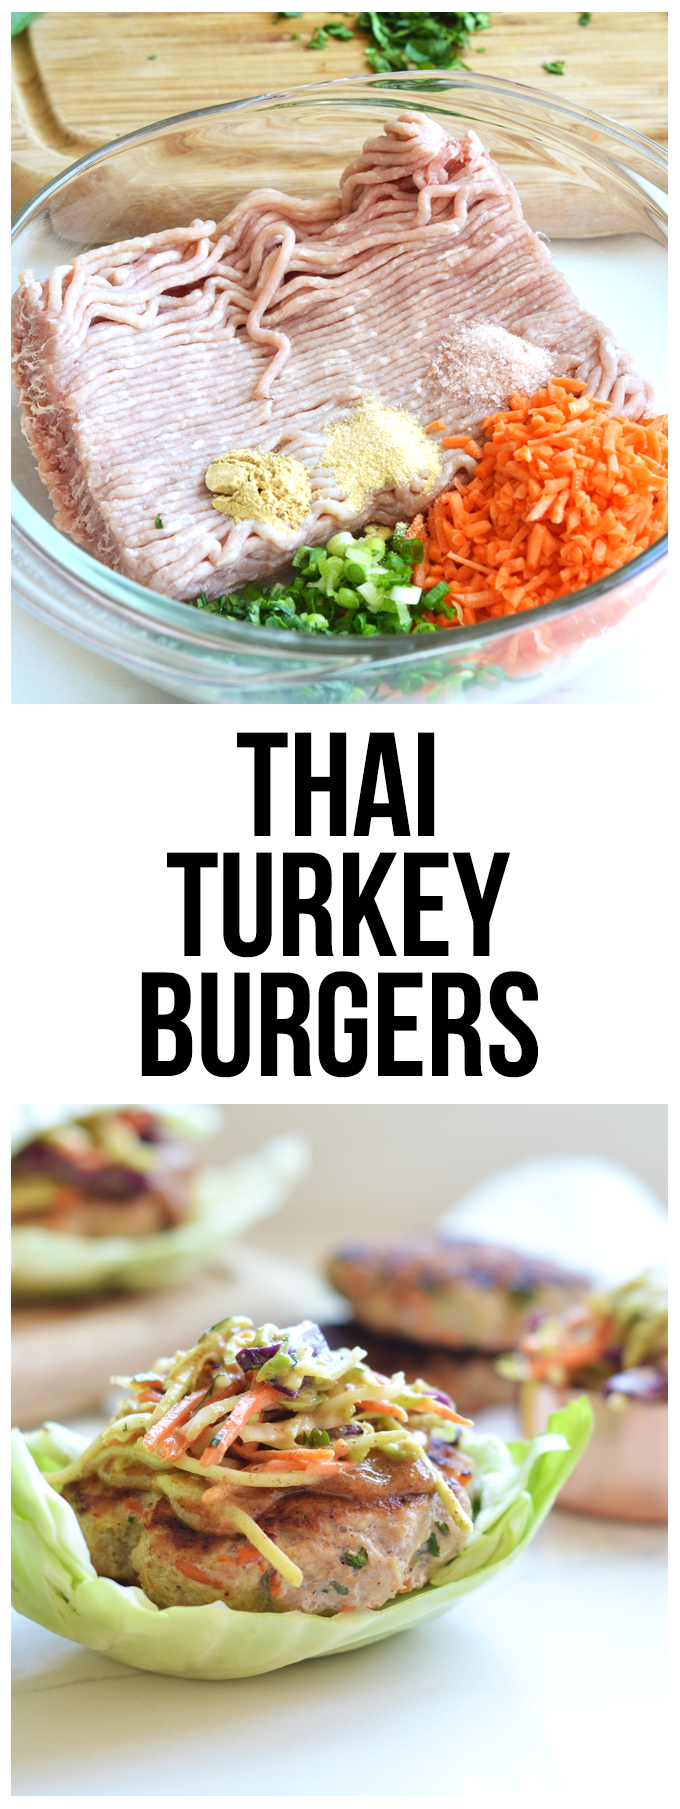 These Whole30 Turkey Burgers Thai Style are bursting with flavor and are super clean! Perfect meal for summer!